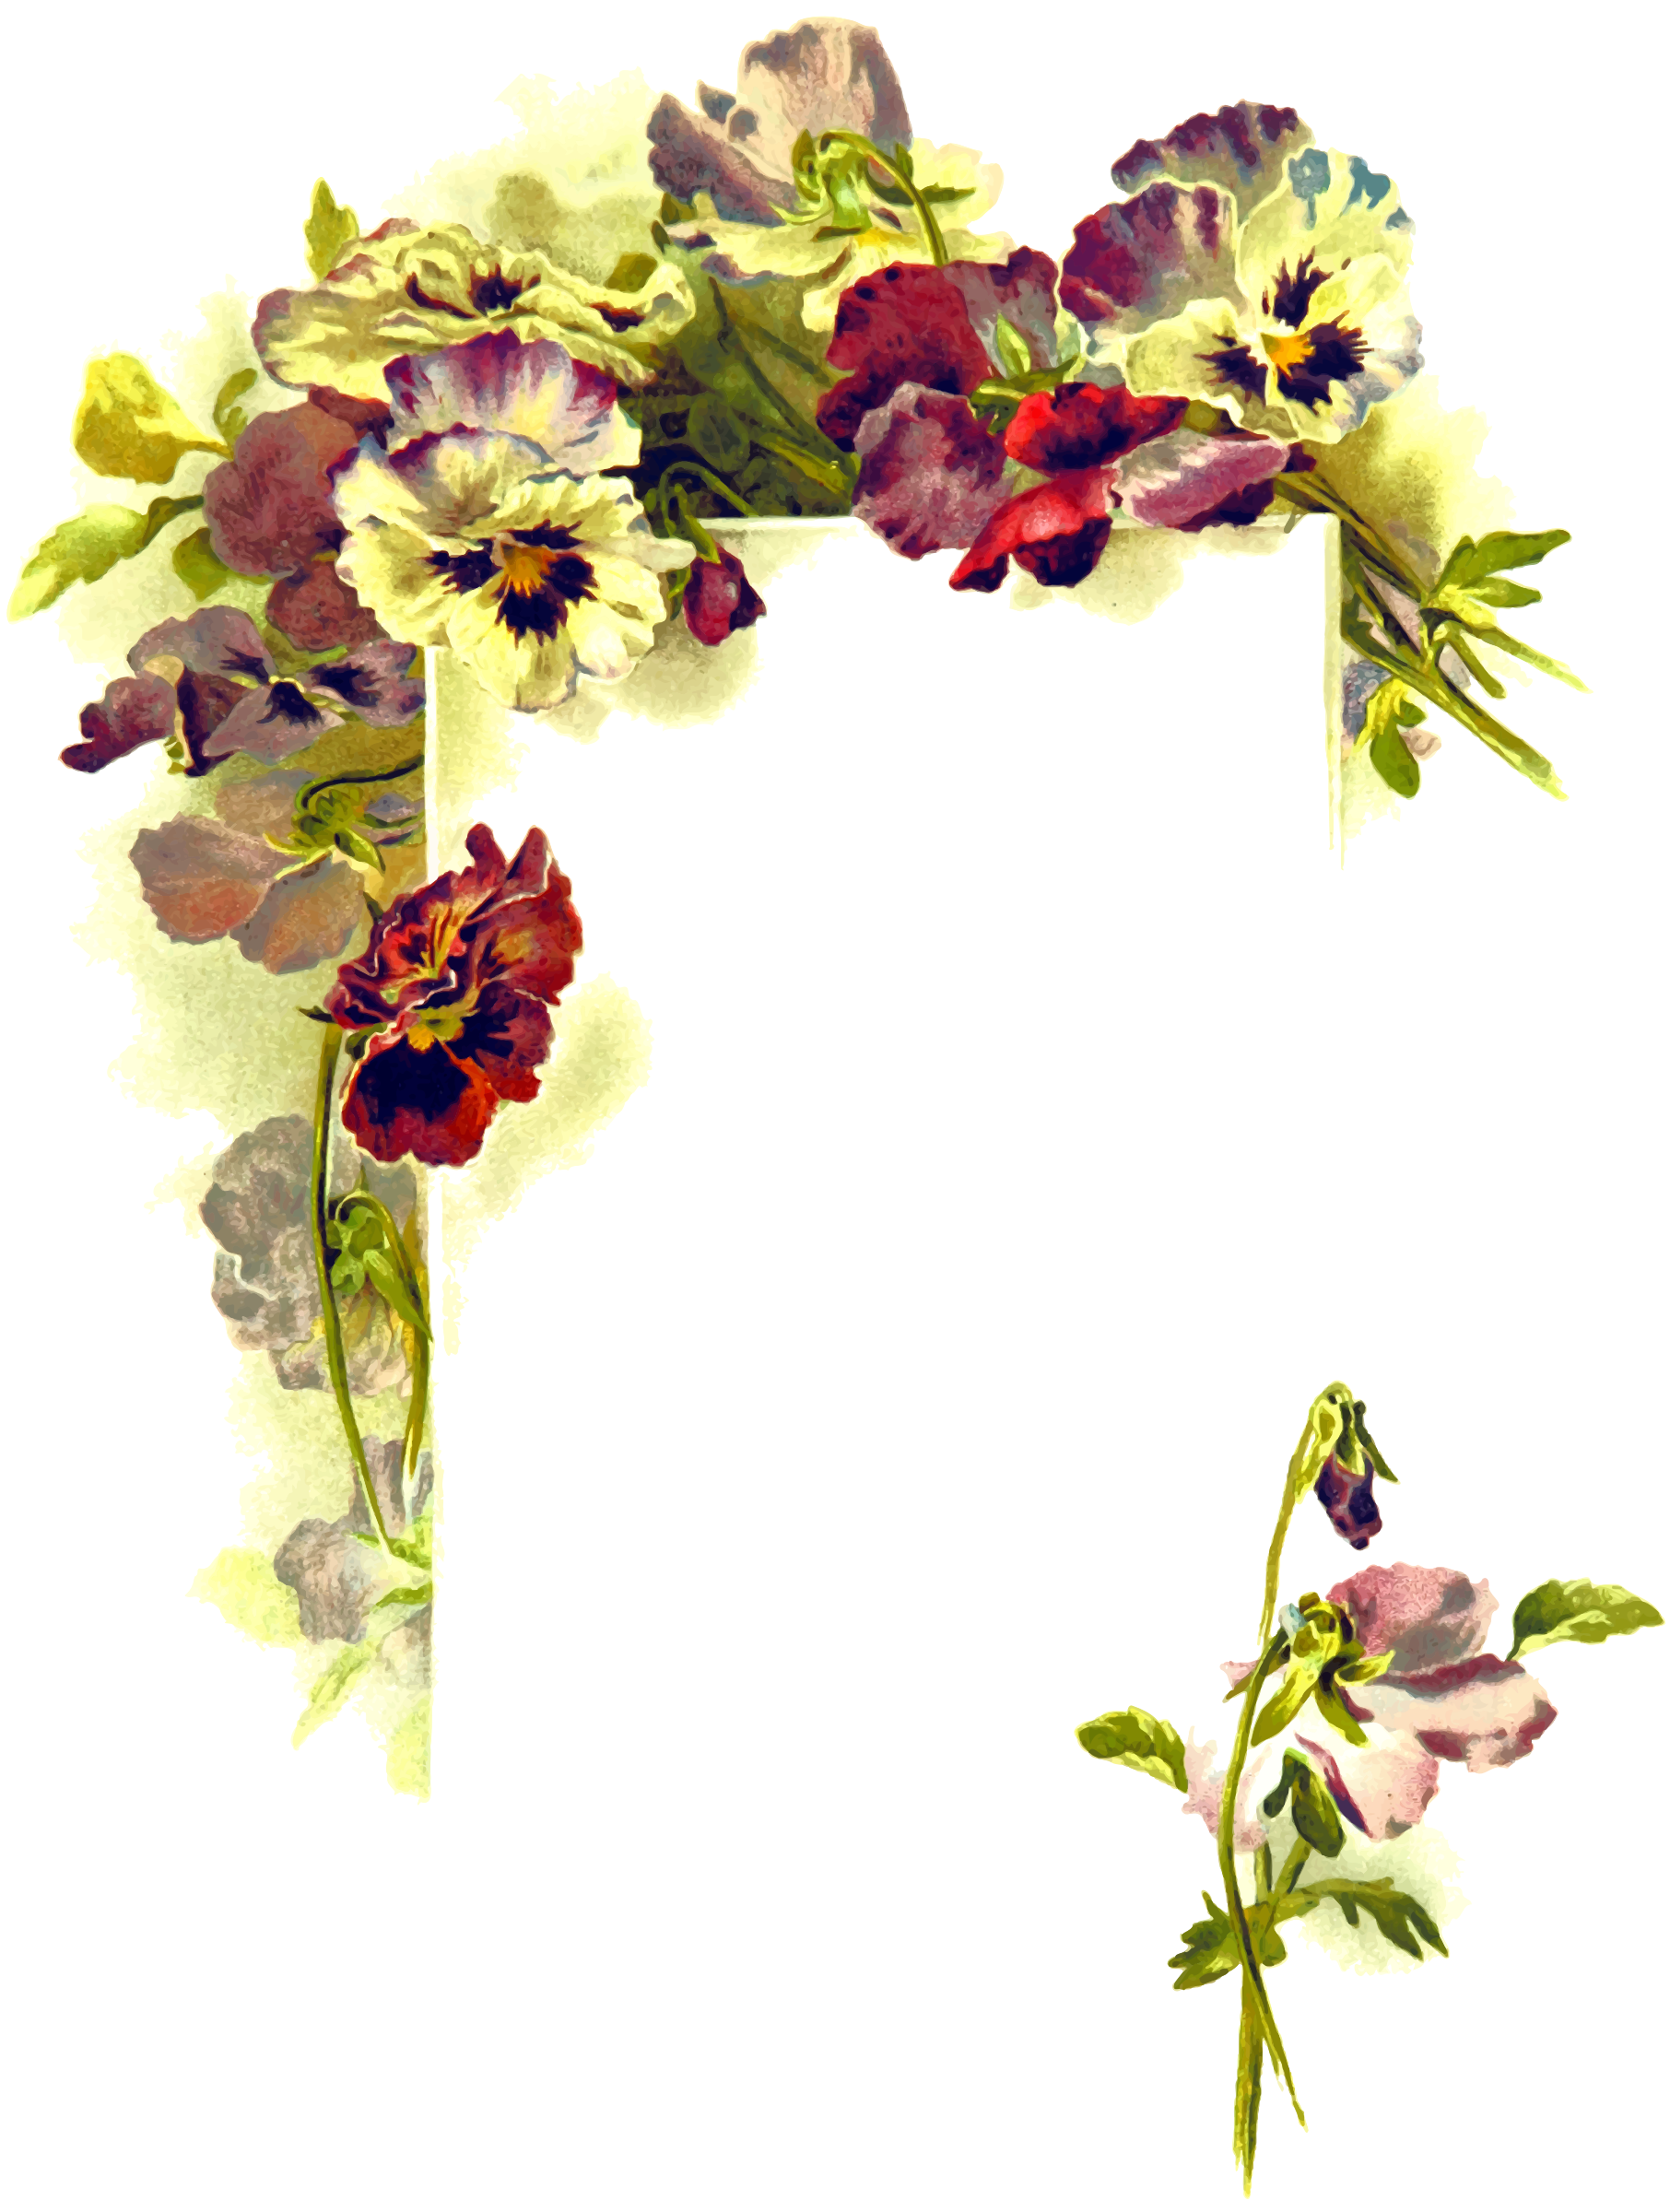 Floral page by Firkin